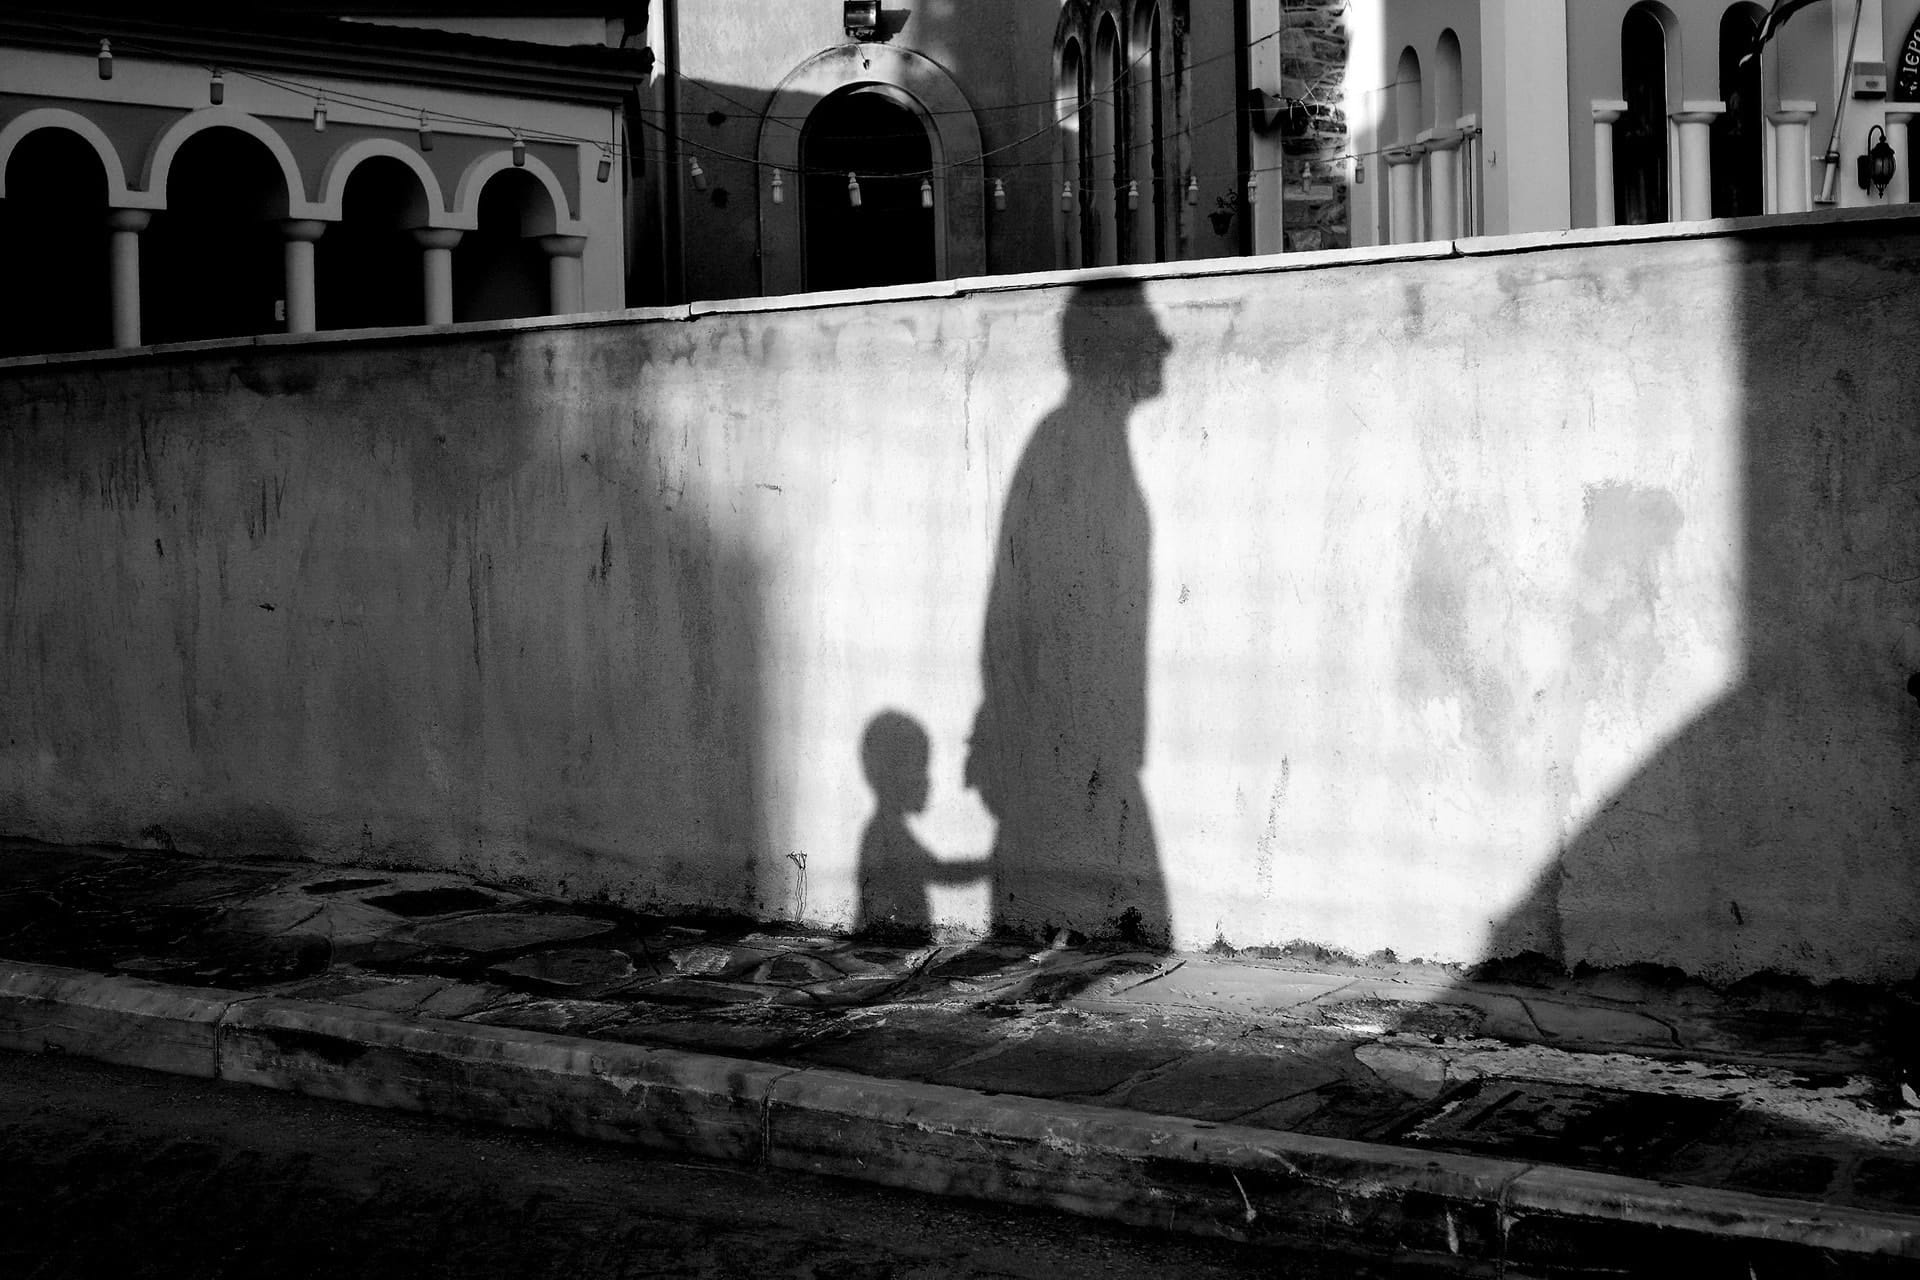 October 2017 Street Photography Contest Submissions ...